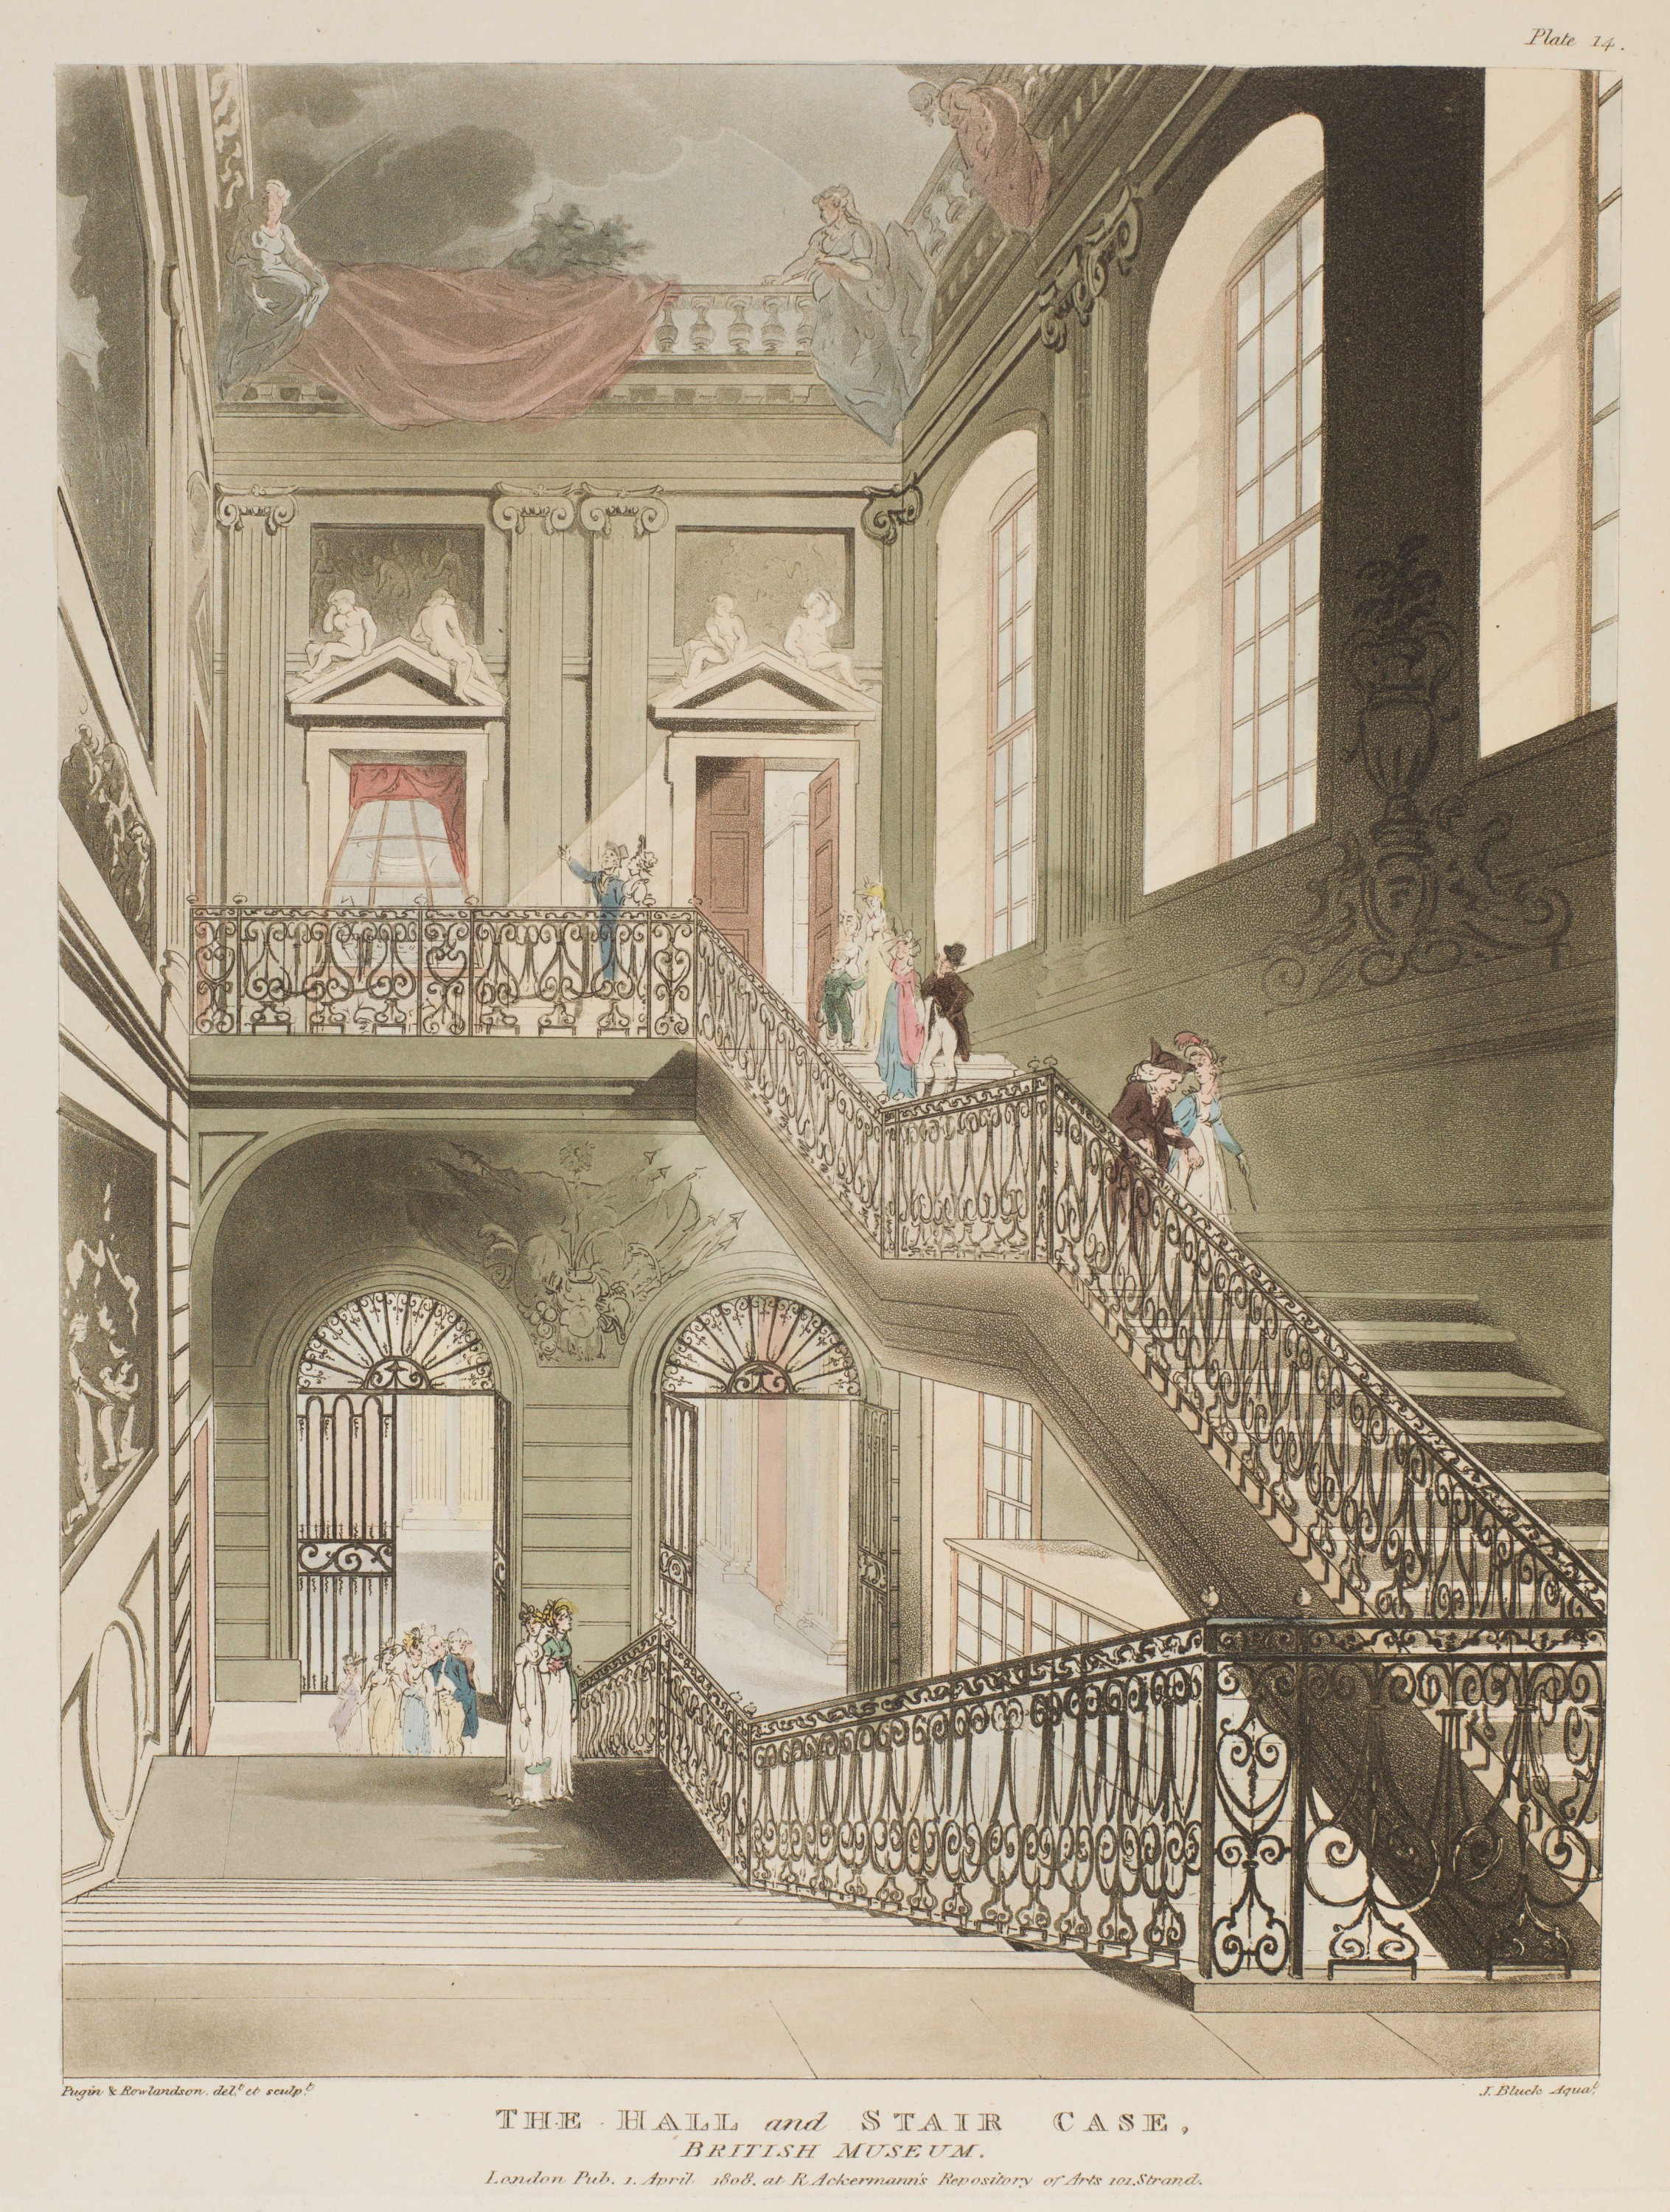 014 - The Hall and Stair Case, British Museum